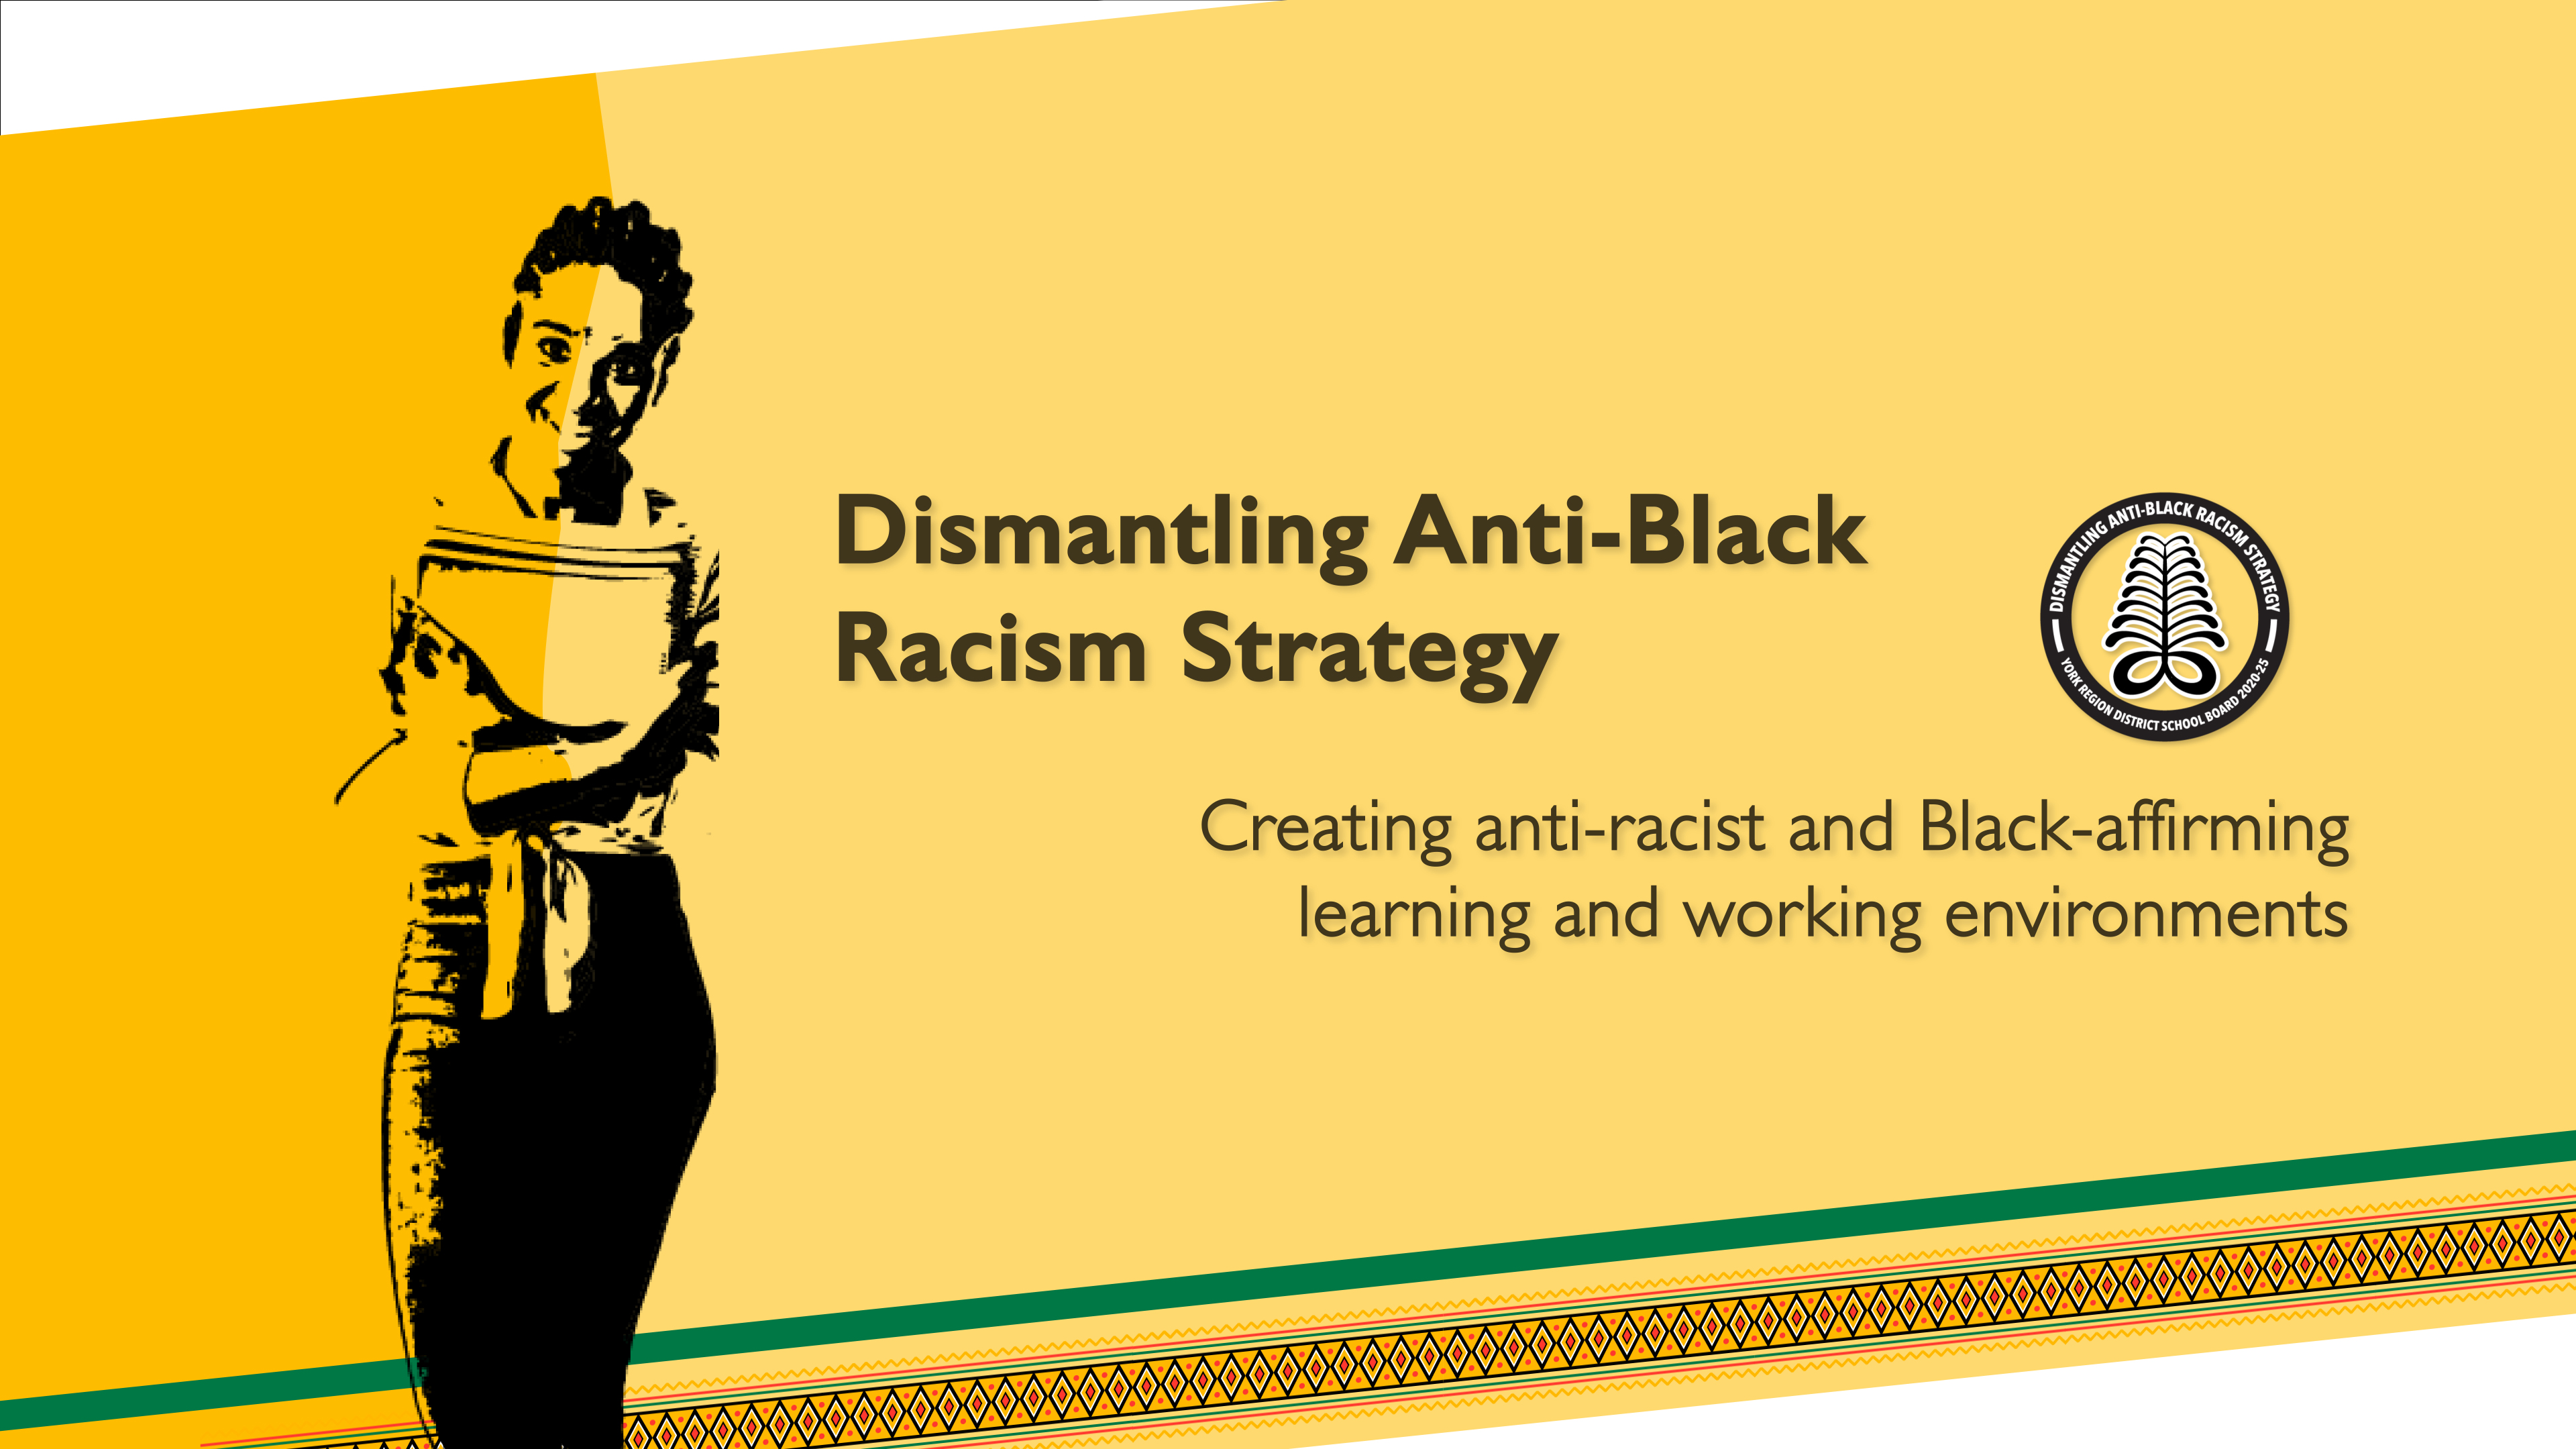 Image of youth holding paper and words Dismantling Anti-Black Racism Strategy: Creating anti-racist and Black affirming learning and working environments